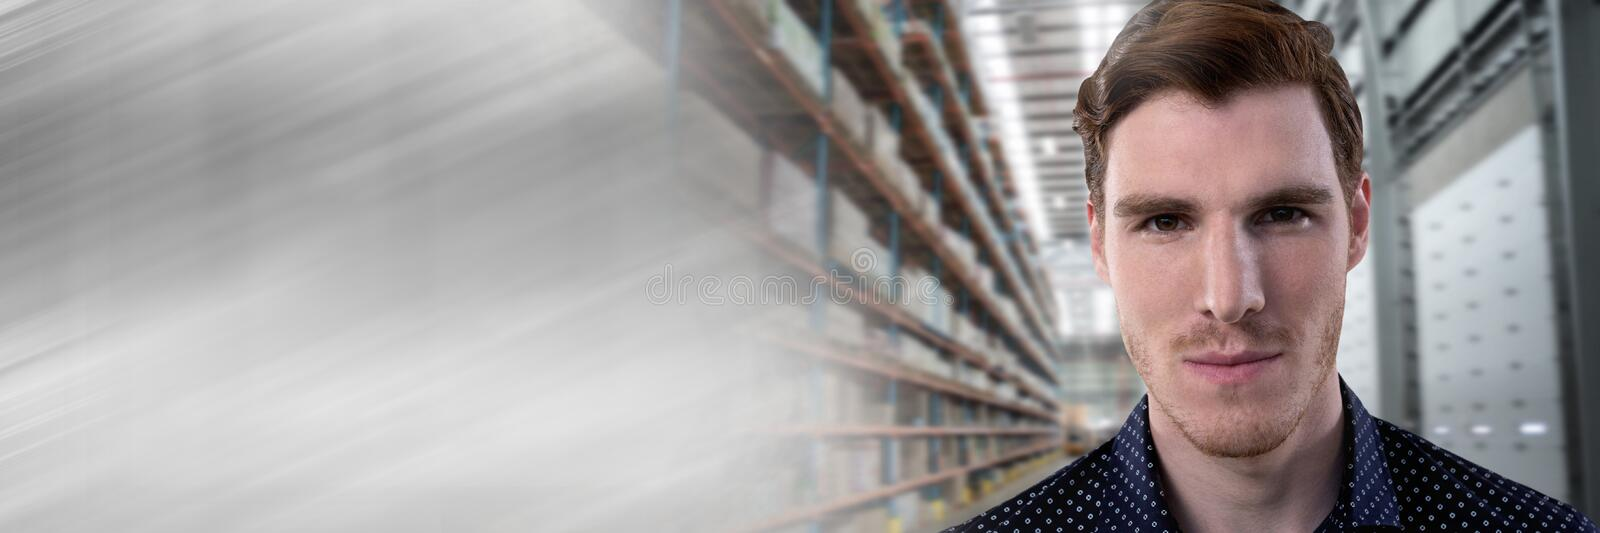 Businessman smiling in warehouse perspective with motion transition stock photo